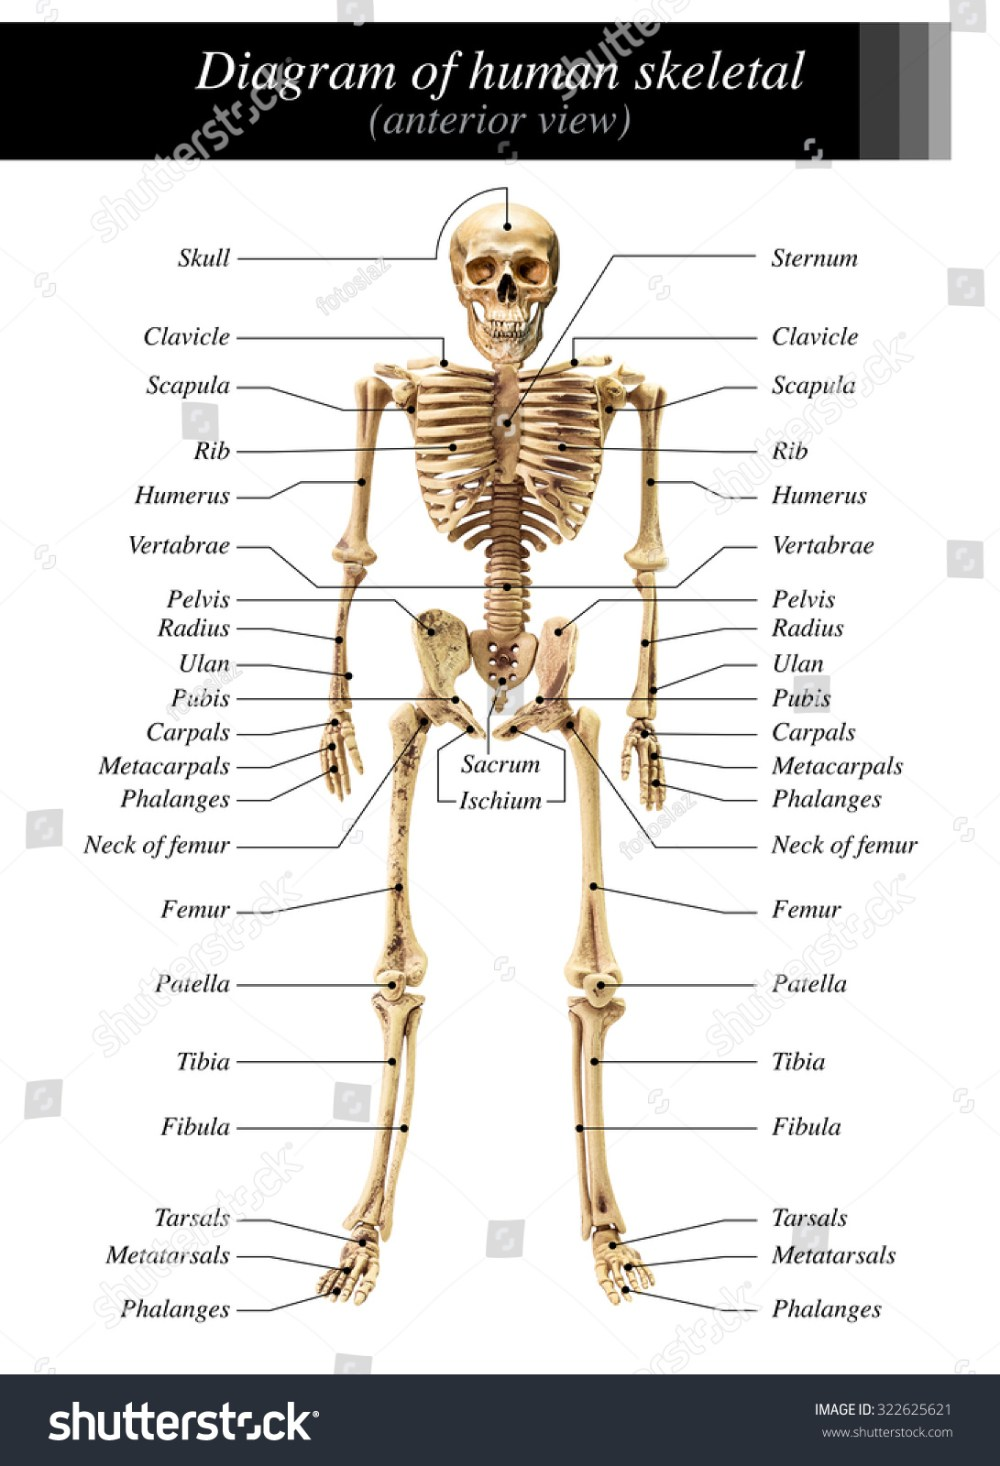 medium resolution of human skeleton diagram in anterior view on white background for basic medical education